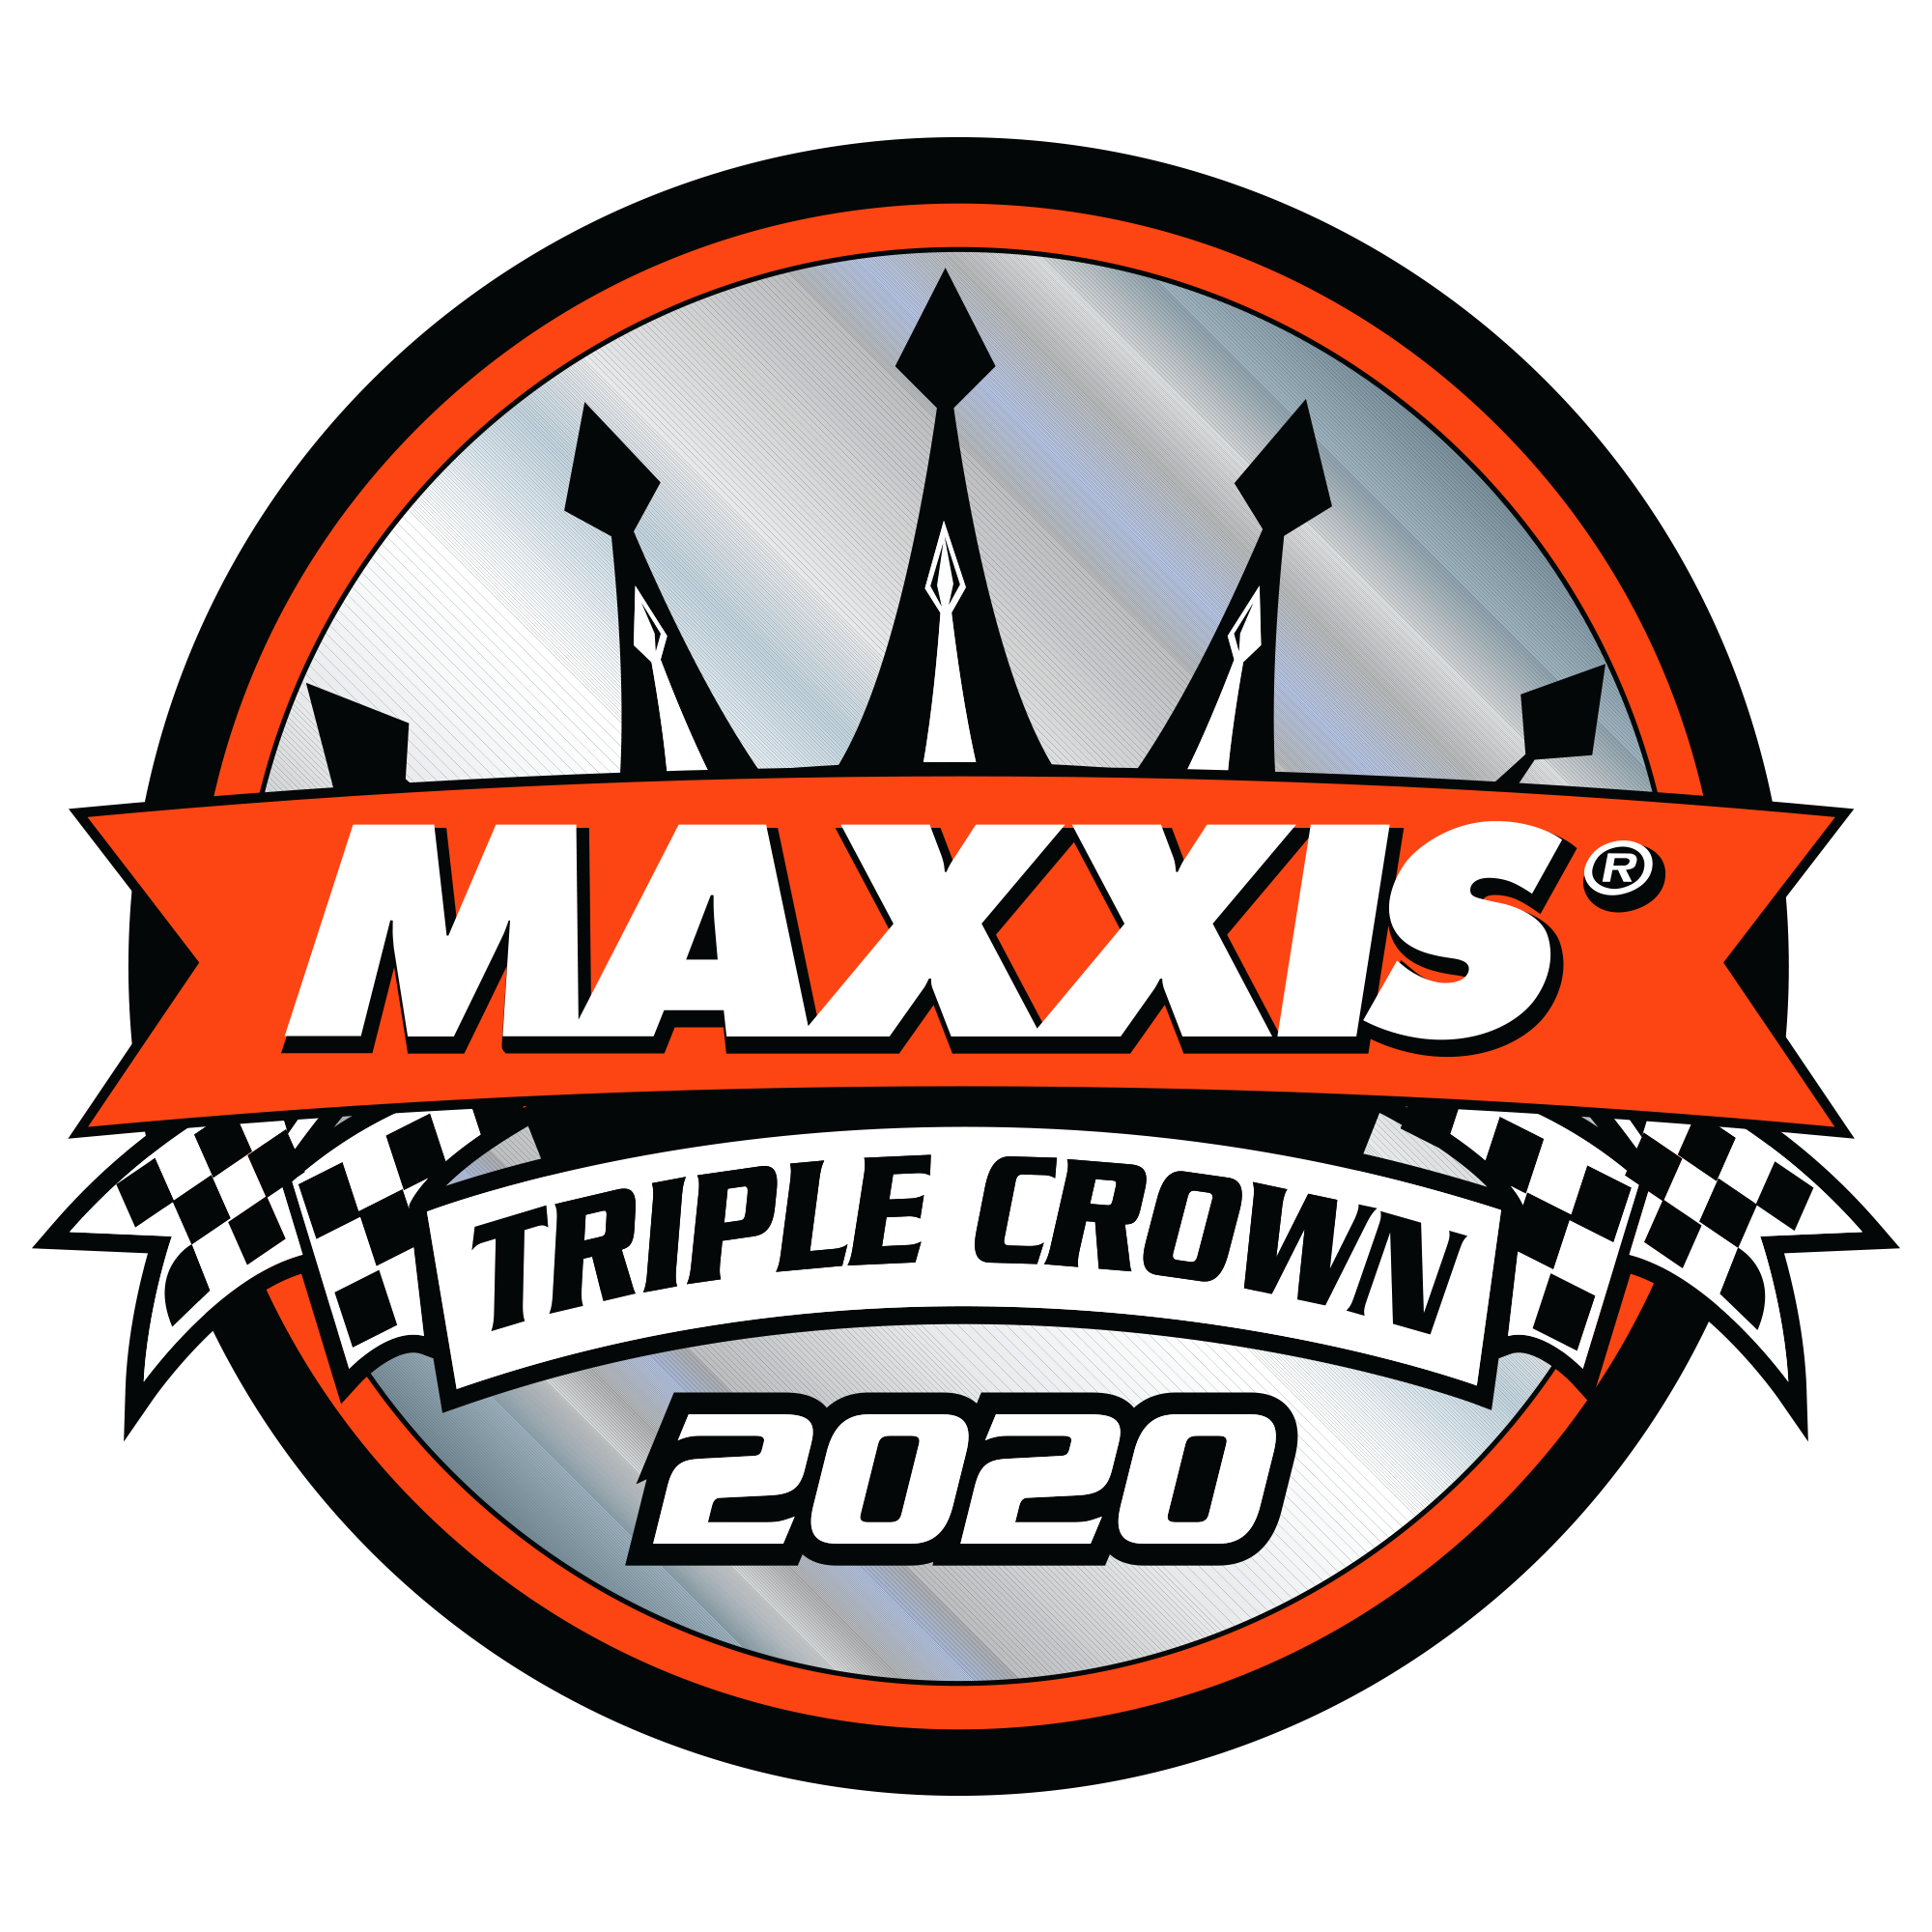 Maxxis Offers Over $300K in Best in the Desert Contingencies